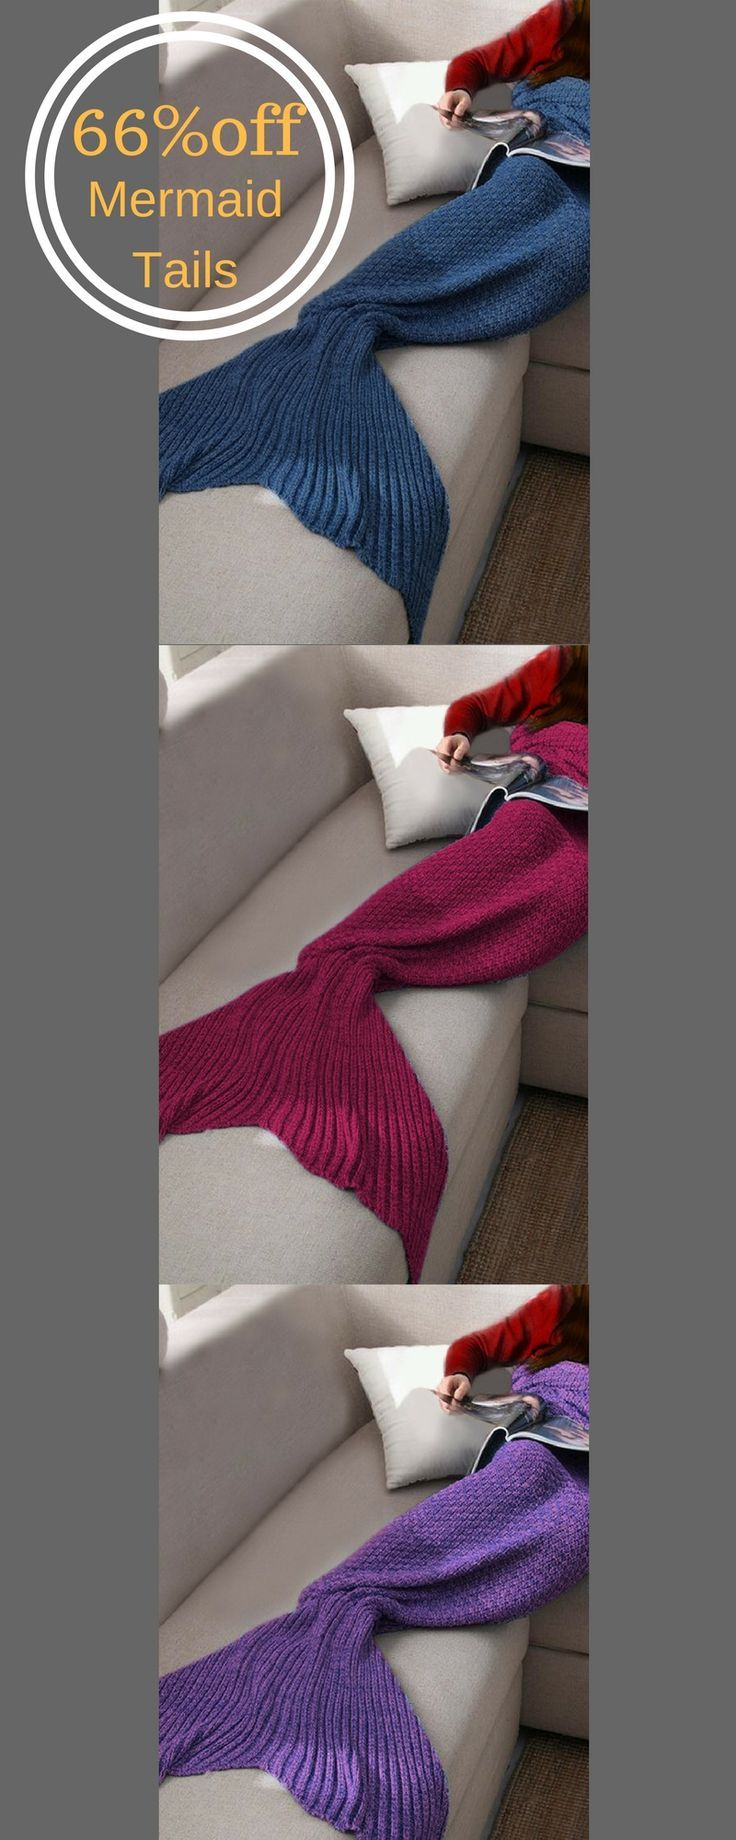 This soft, knitted Mermaid Tail Blanket is much more fun than an ordinary blanket. Use it on camping trips, long car rides, snuggling up with a good book or watching TV. It makes a great gift for the mermaid lover in your life. #afflink #mermaid #blanket #livingroomdecor #cozy #fall #warm